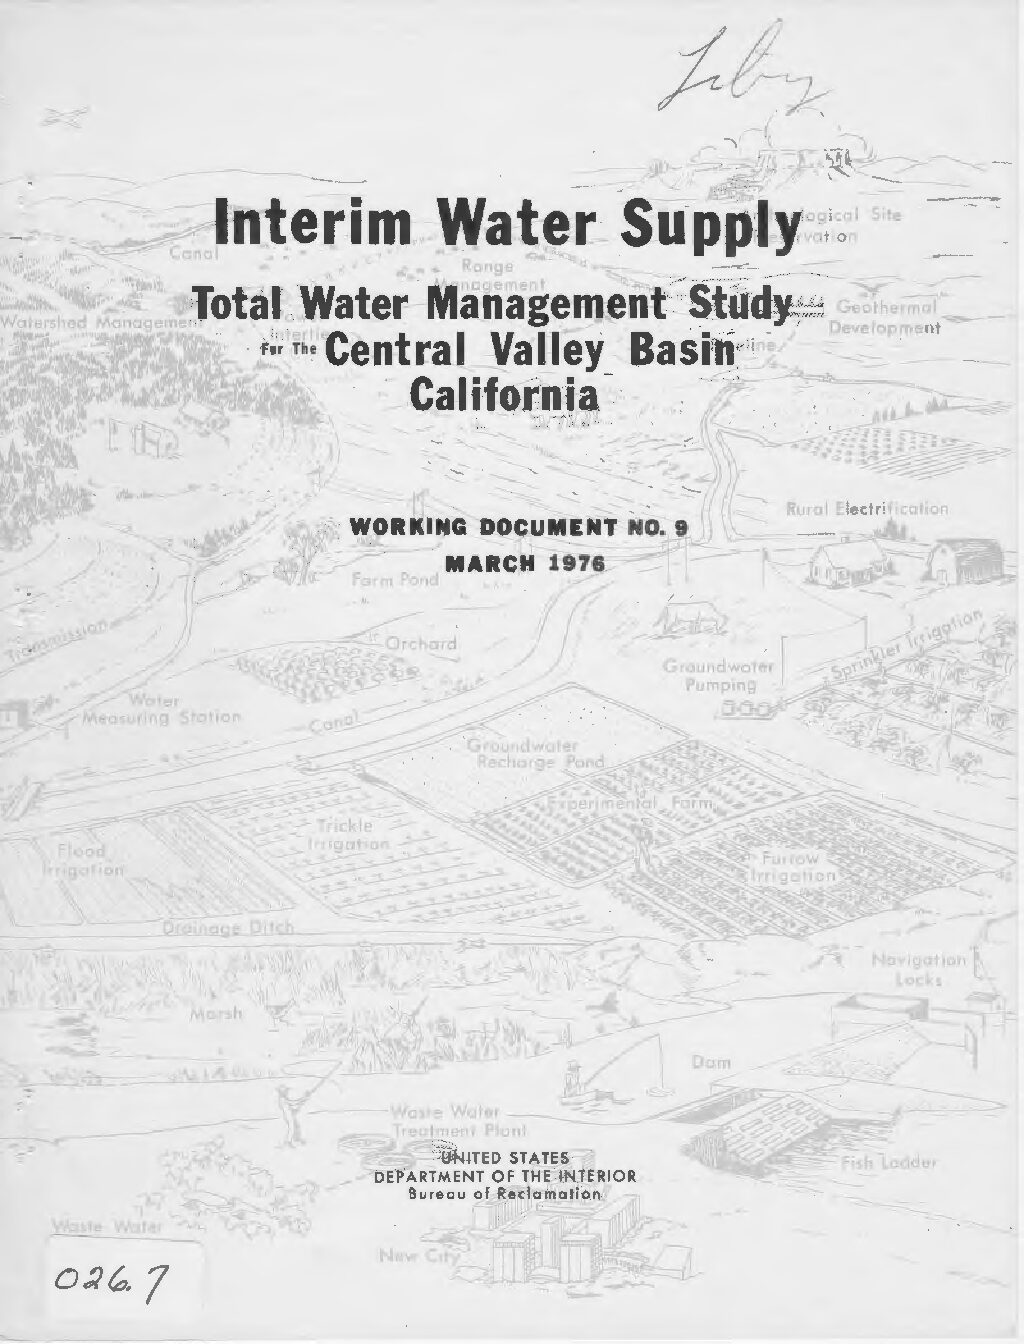 Total Water Management Study for the Central Valley Basin, California, Interim Water Supply Working Document No. 9